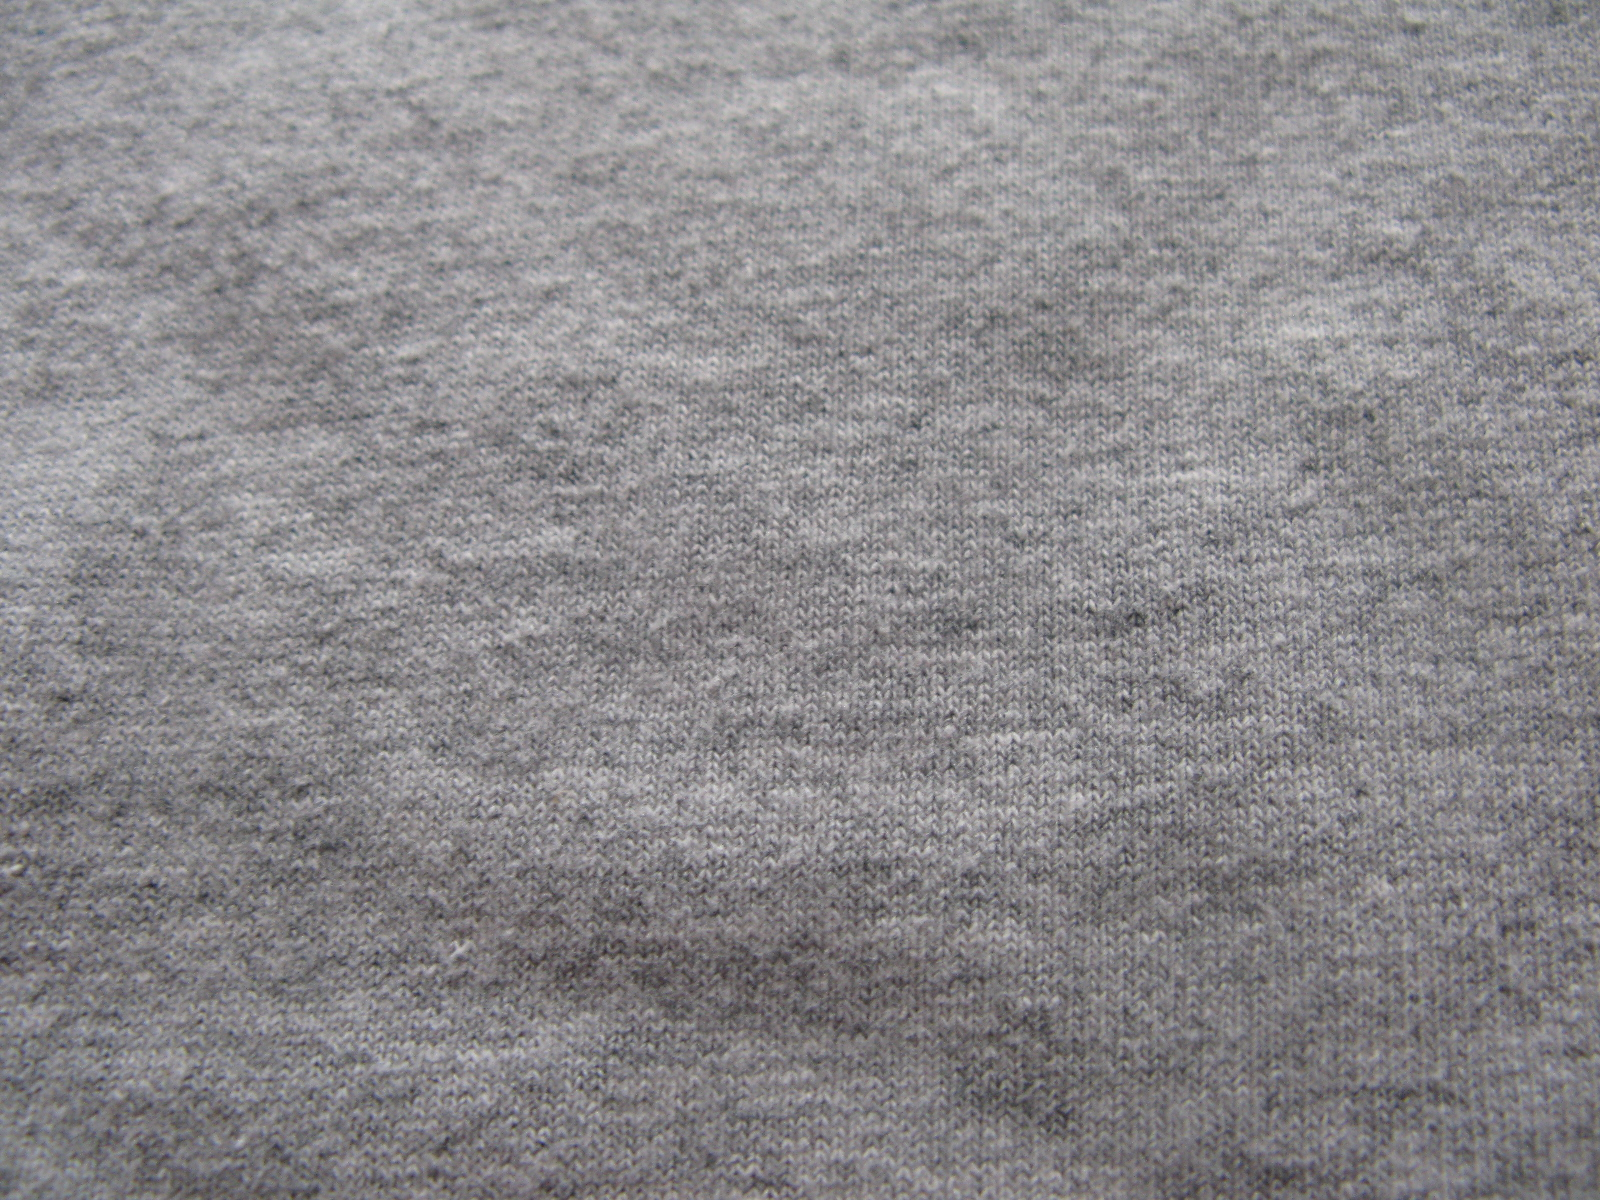 Image result for tee grey fabric swatch